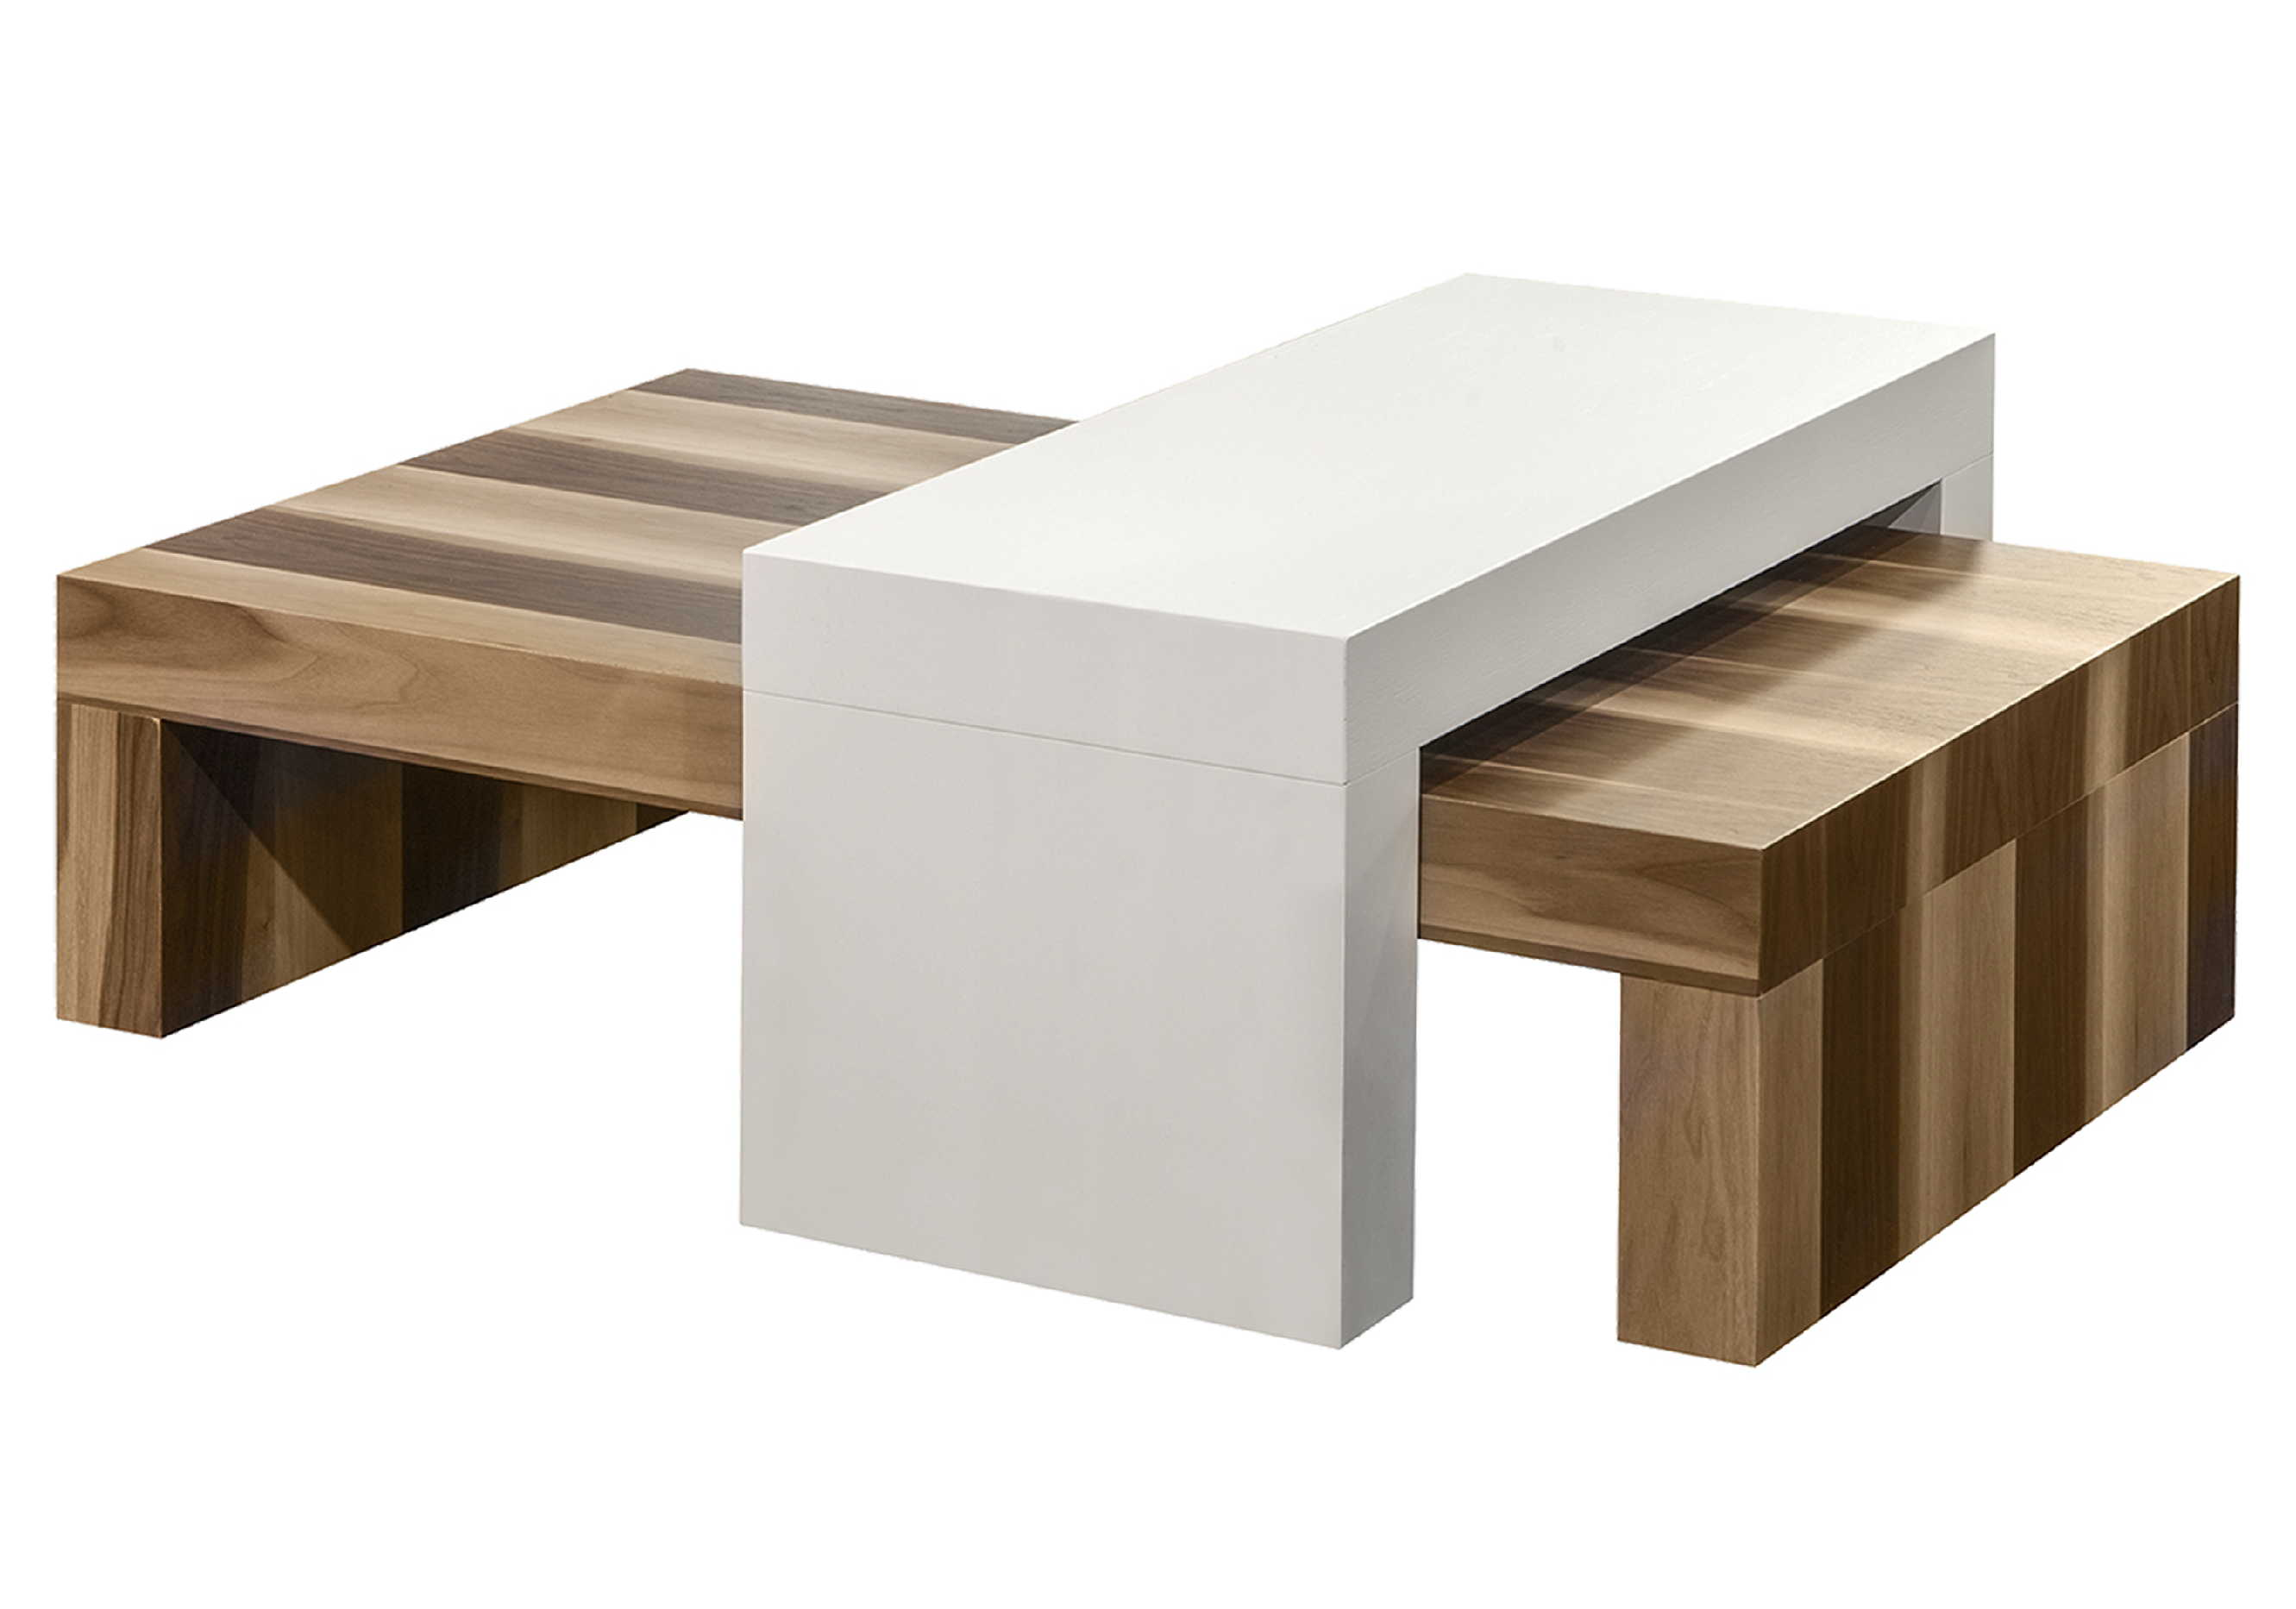 Viebois catalog living room tables 310tcr for Table in table